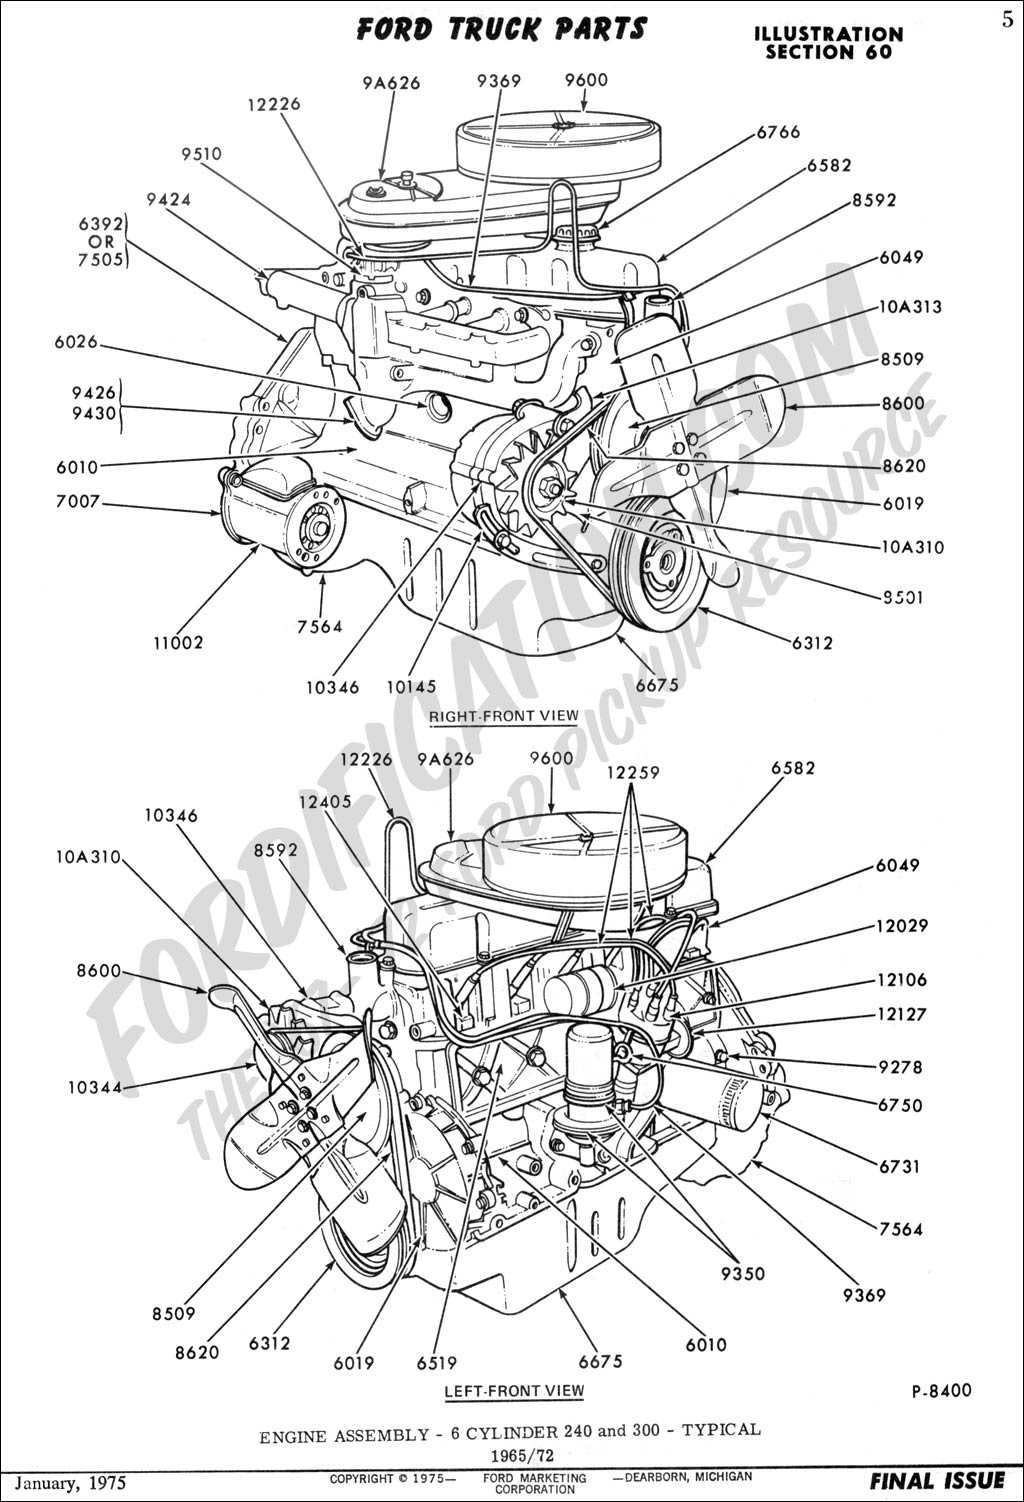 Oil Pump Location And Replacement Ford Truck